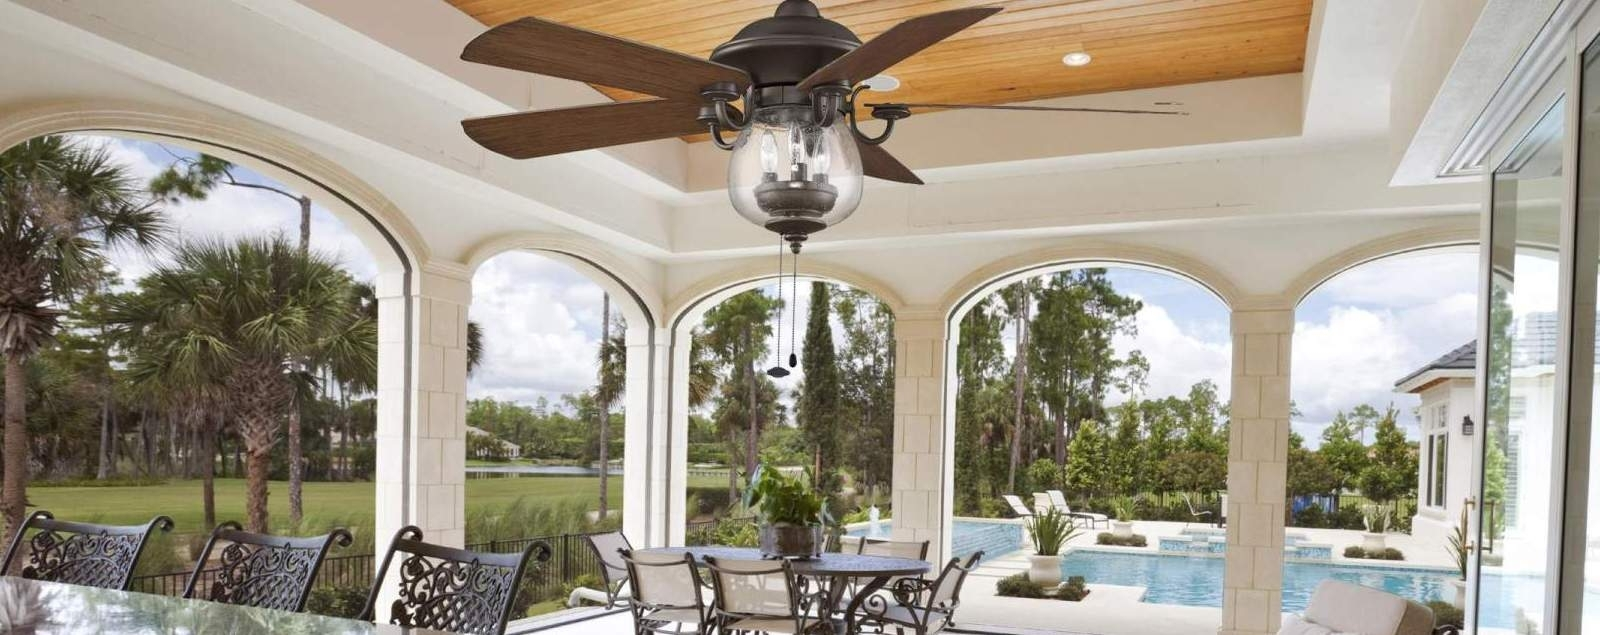 Well Known Outdoor Ceiling Fans With Cord Regarding Outdoor Ceiling Fans – Shop Wet, Dry, And Damp Rated Outdoor Fans (View 19 of 20)